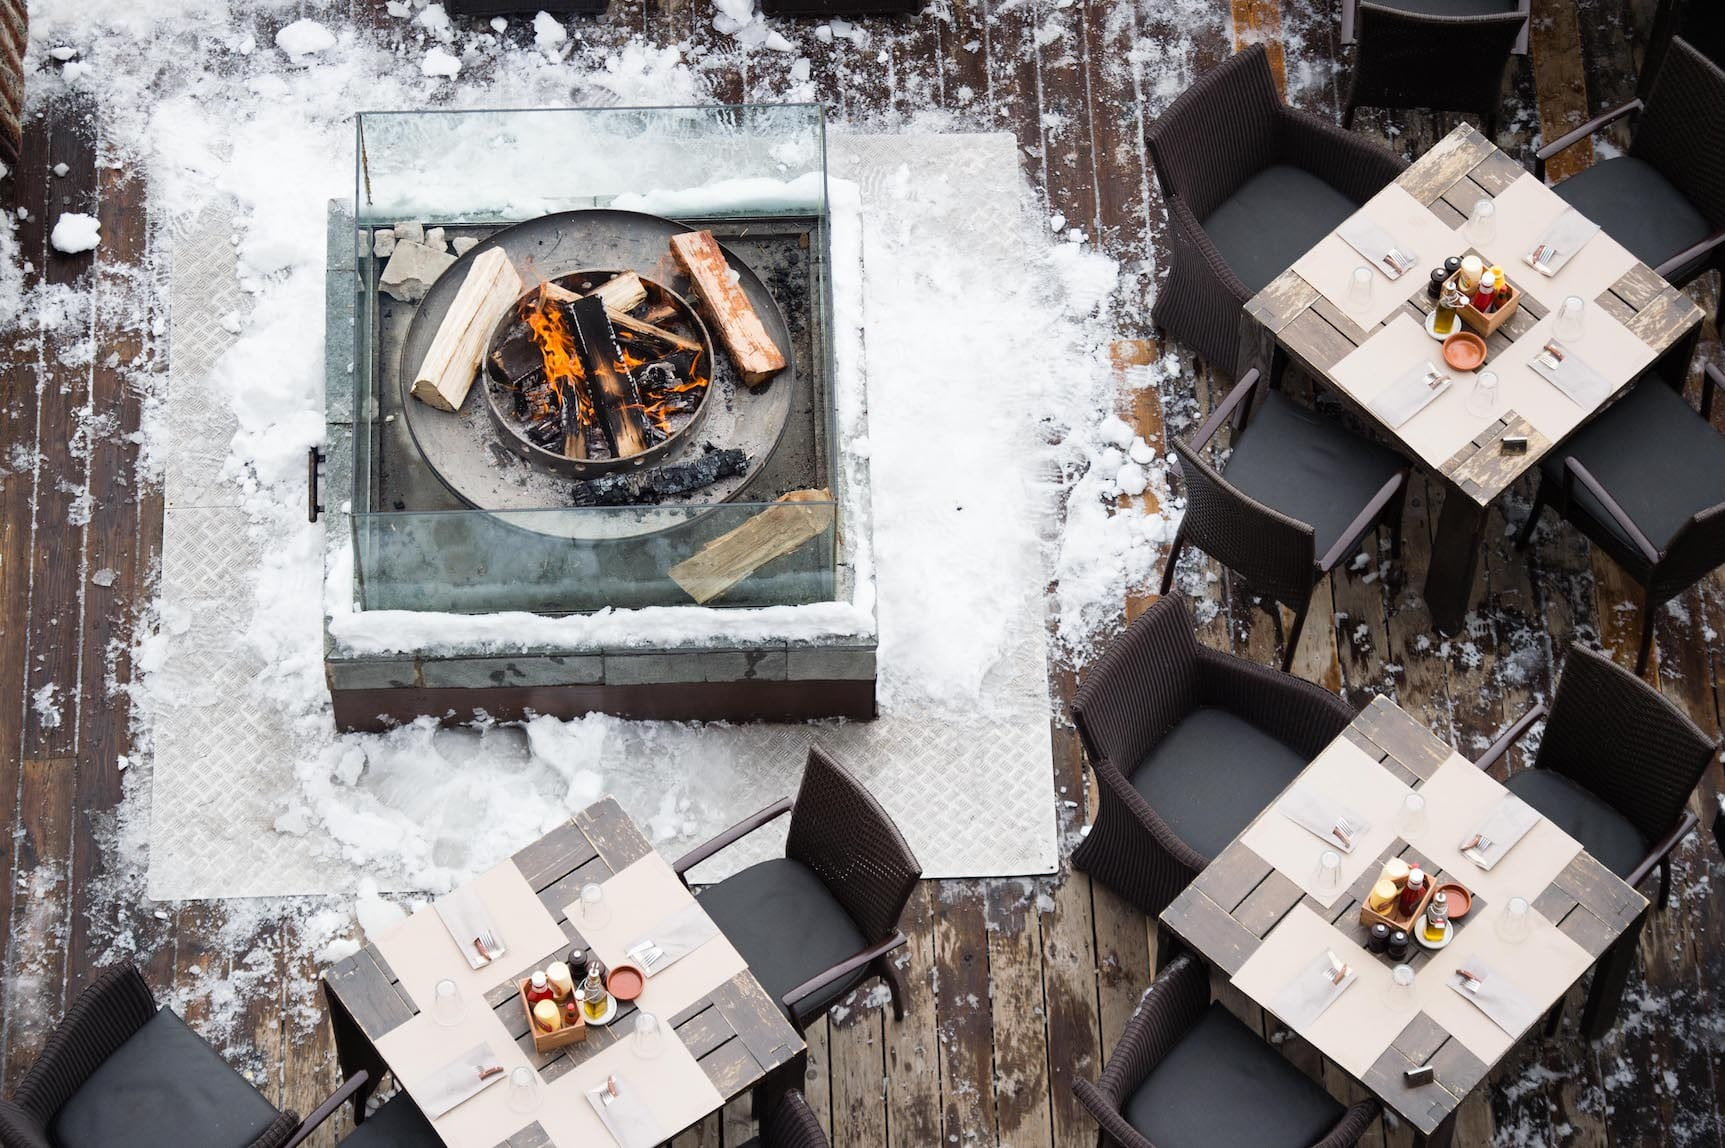 fire-ice-from-above-portetta-amy-murrell-6